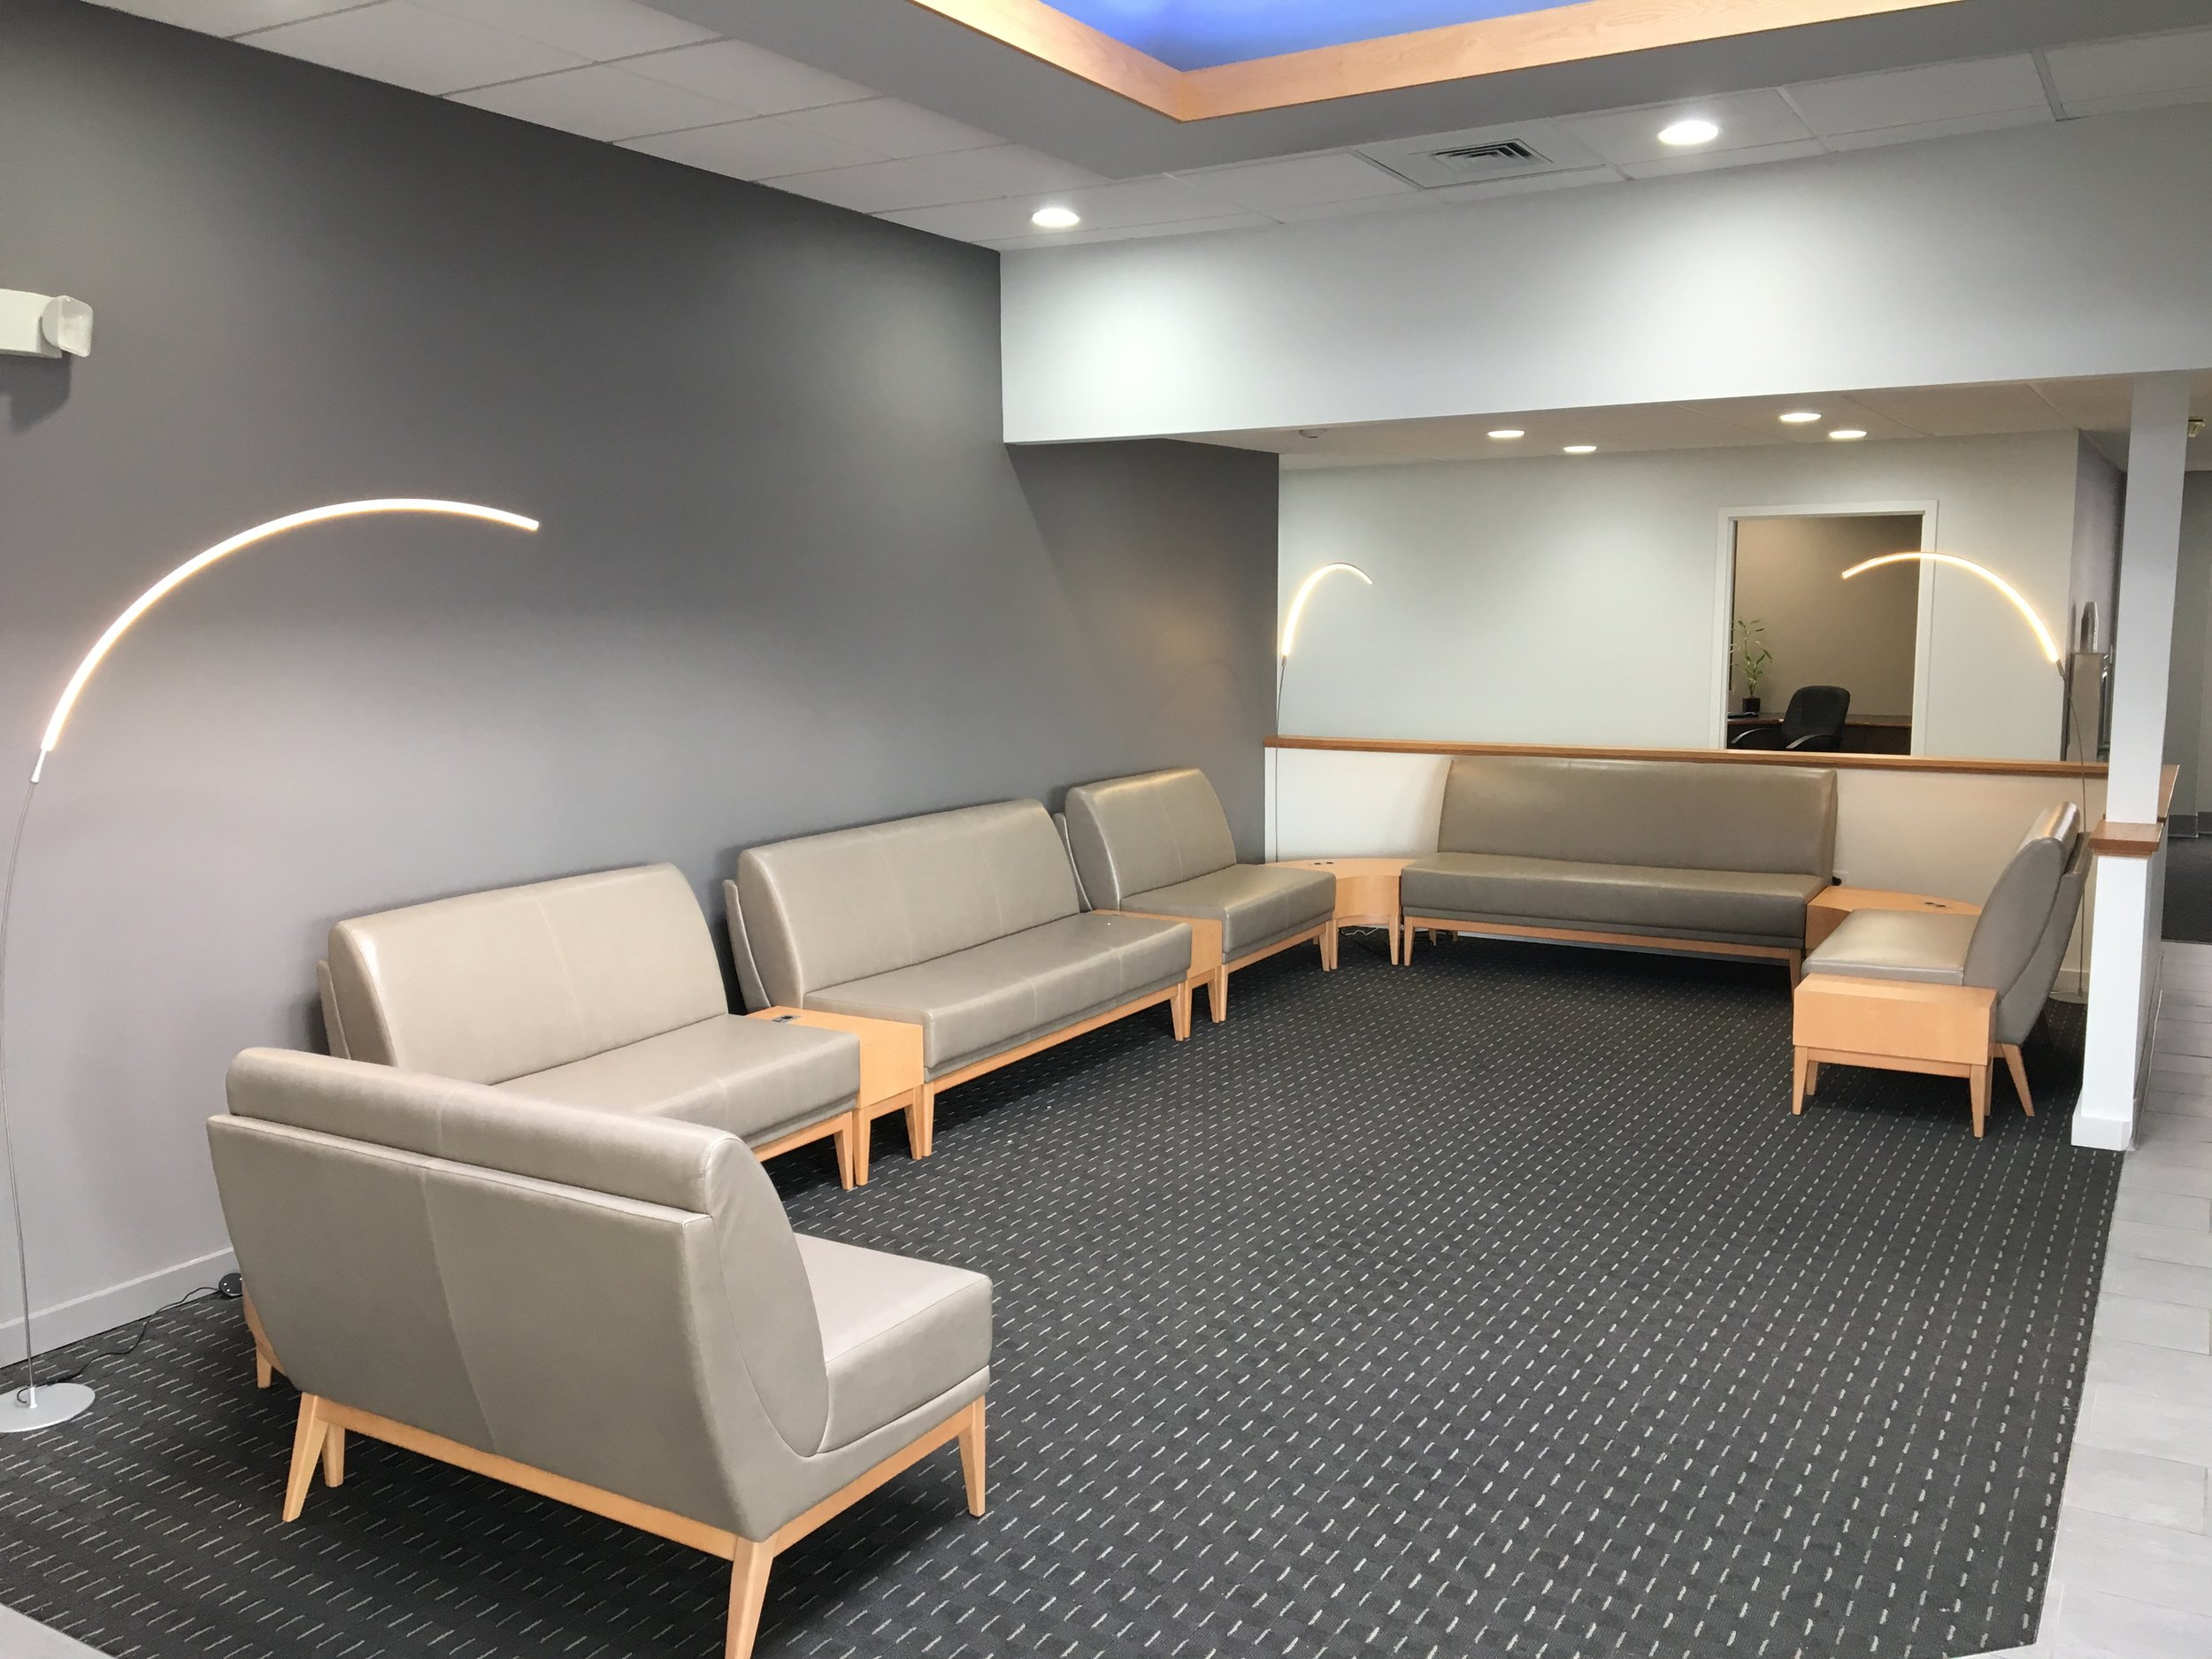 Lobby and lounge space for crew and passengers -